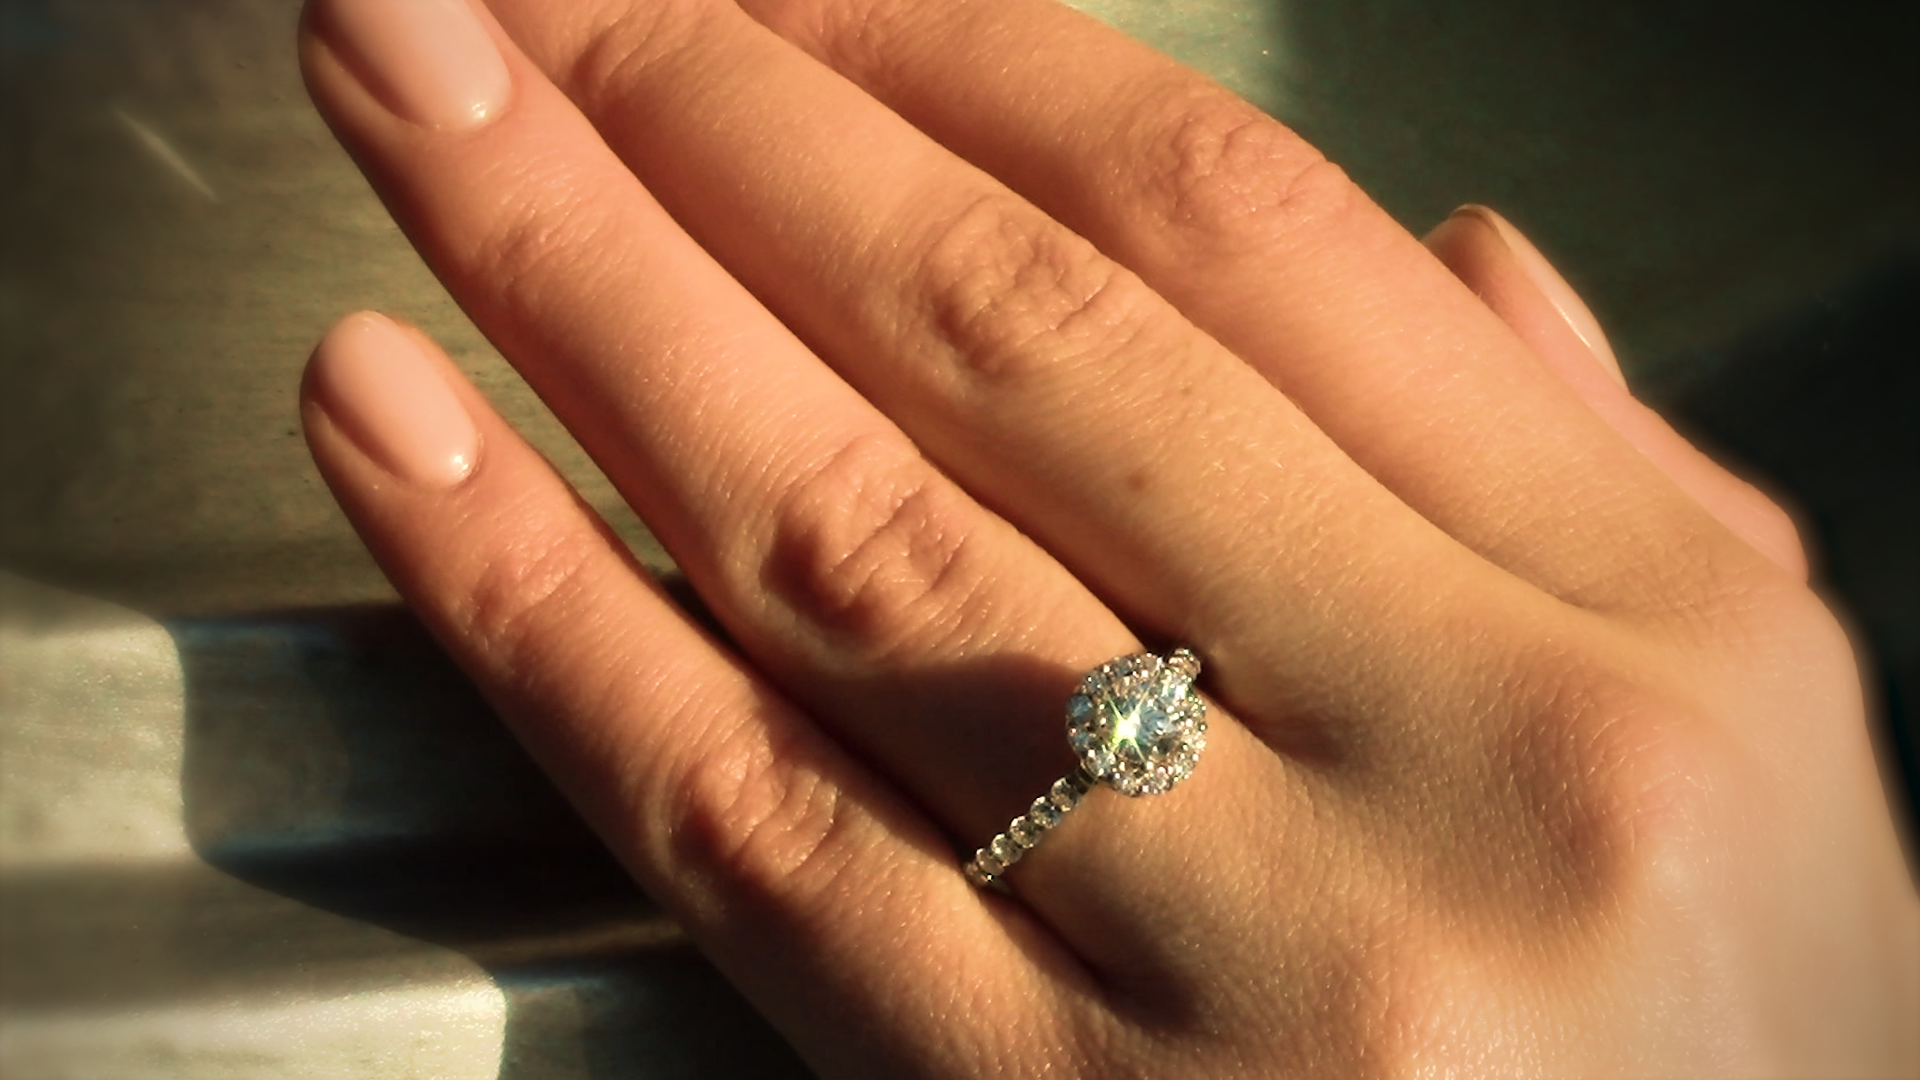 Halo ring with a diamond band for that extra sparkle effect.